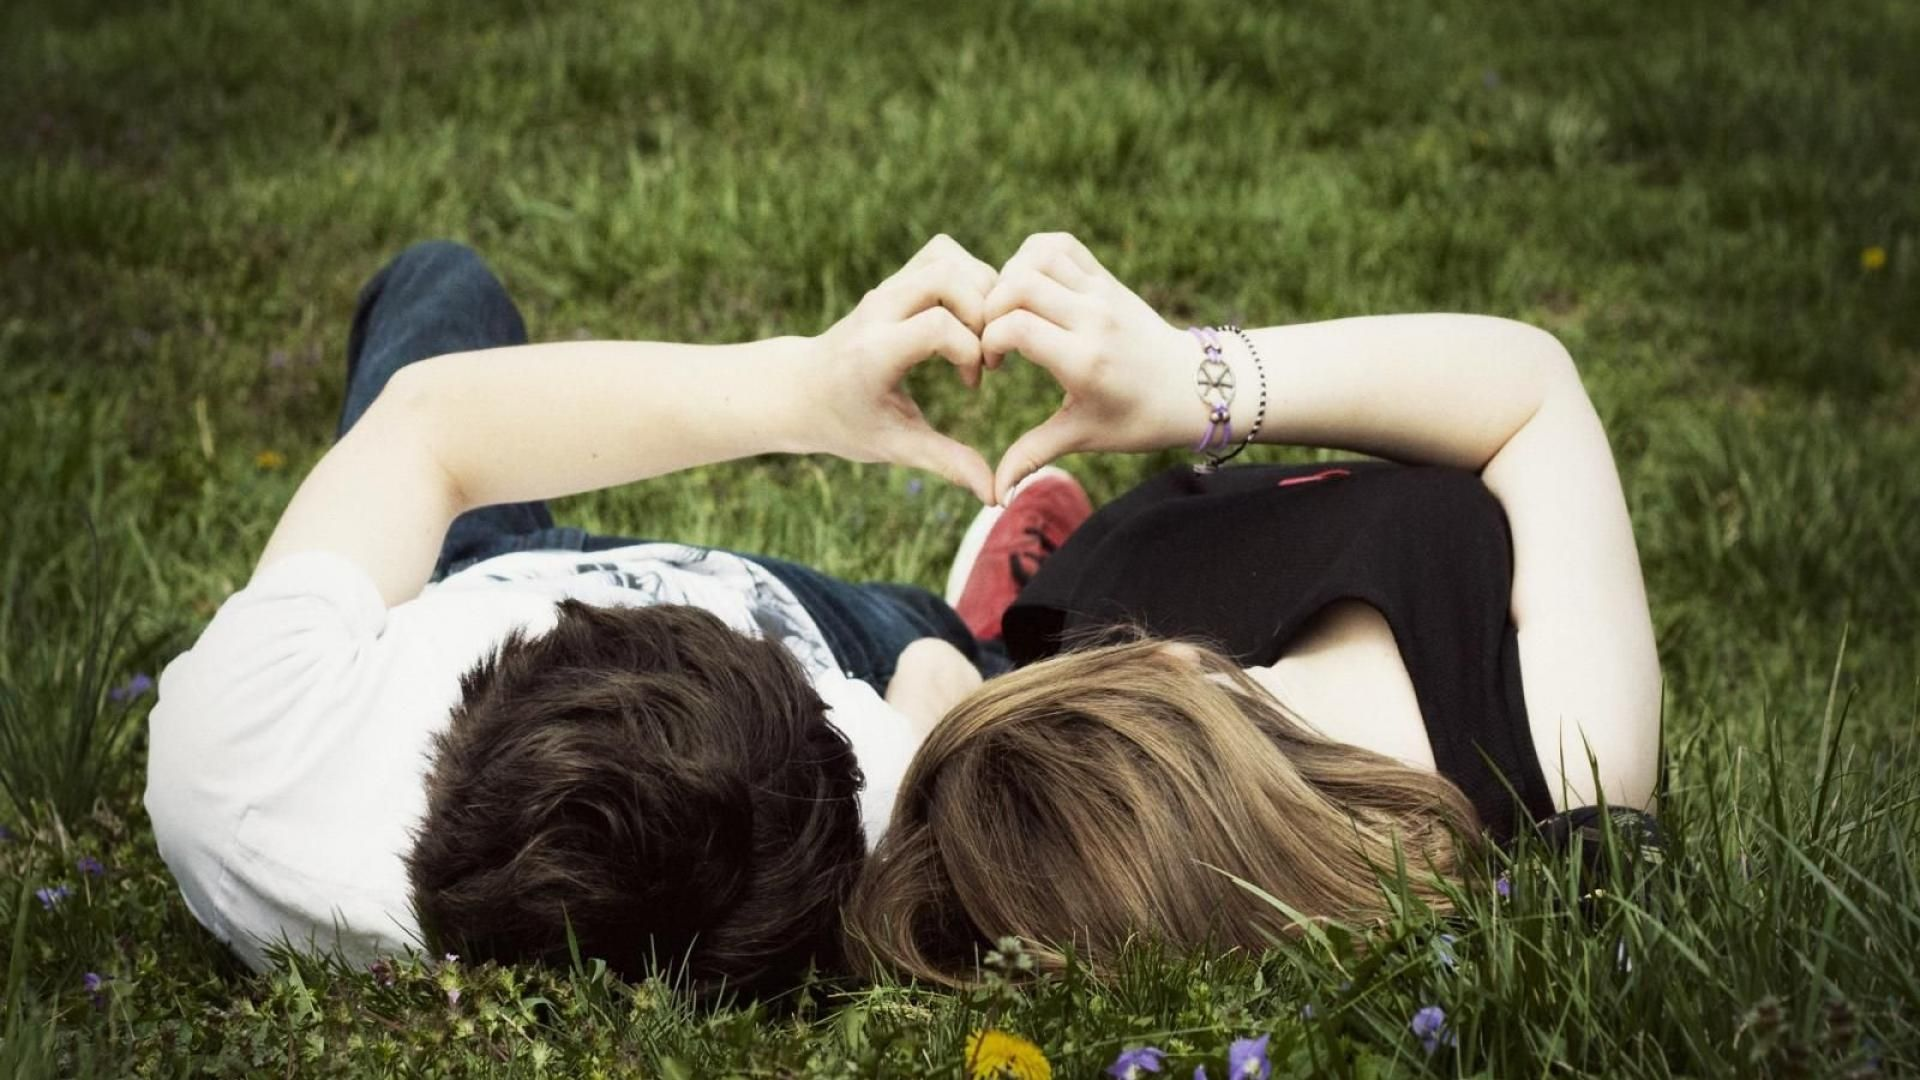 Romantic Images Of Love Hd Download Romantic Love Hd Wallpapers